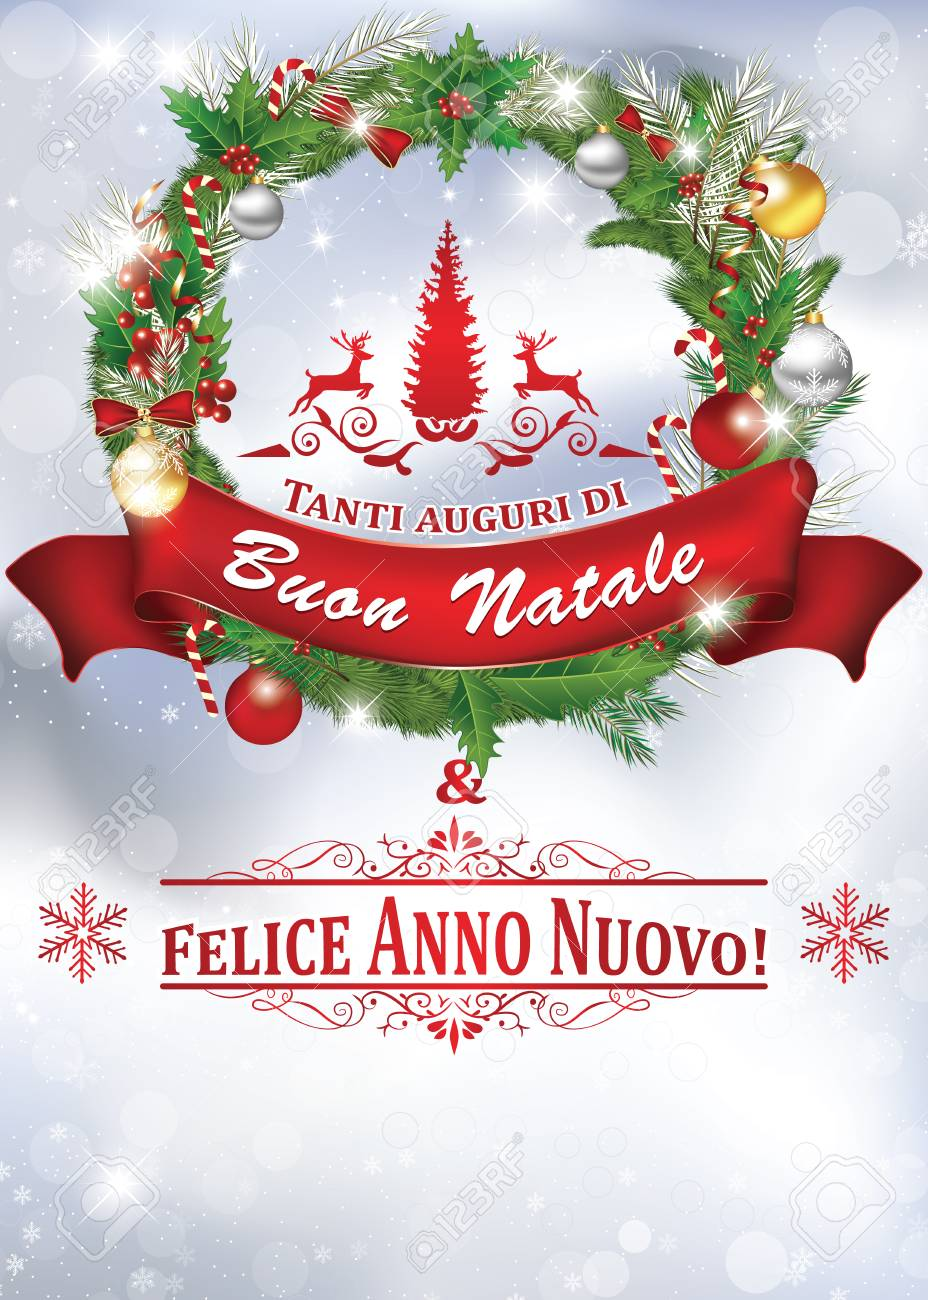 Auguri Di Buon Natale Merry Christmas.Printable New Year Greeting Card With Message In Italian Language